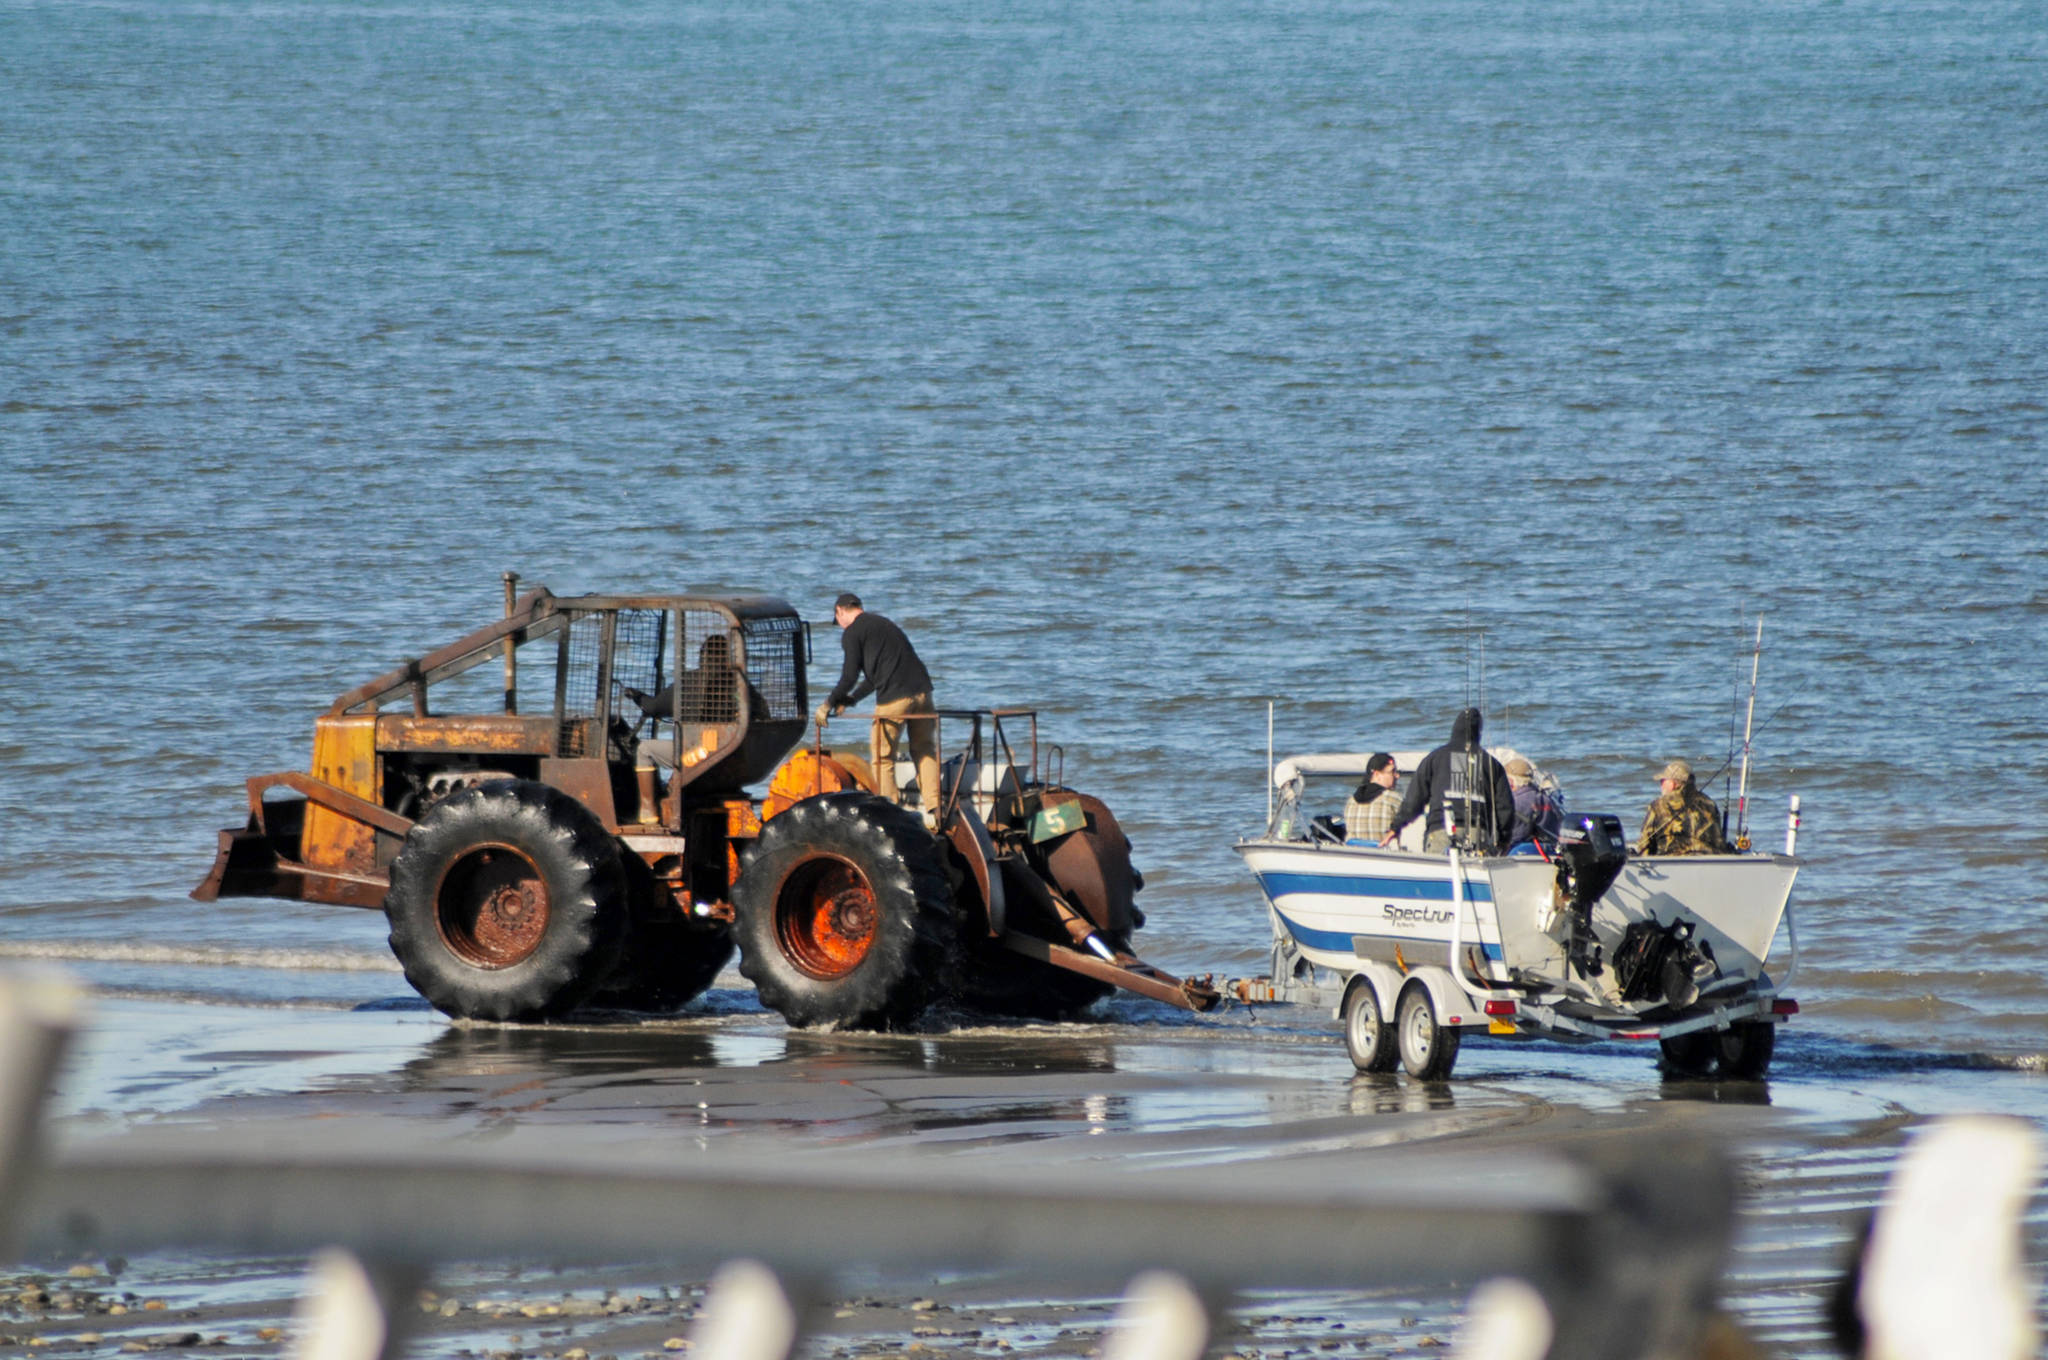 Anglers prepare to head out onto Cook Inlet from the tractor launch at Deep Creek State Recreation Site on Sunday, May 28, 2018 in Ninilchik, Alaska. Halibut fishing has been reportedly fair so far this year, with anglers regularly landing halibut smaller than 100 pounds and a few over 100 pounds out of Ninilchik. (Photo by Elizabeth Earl/Peninsula Clarion)